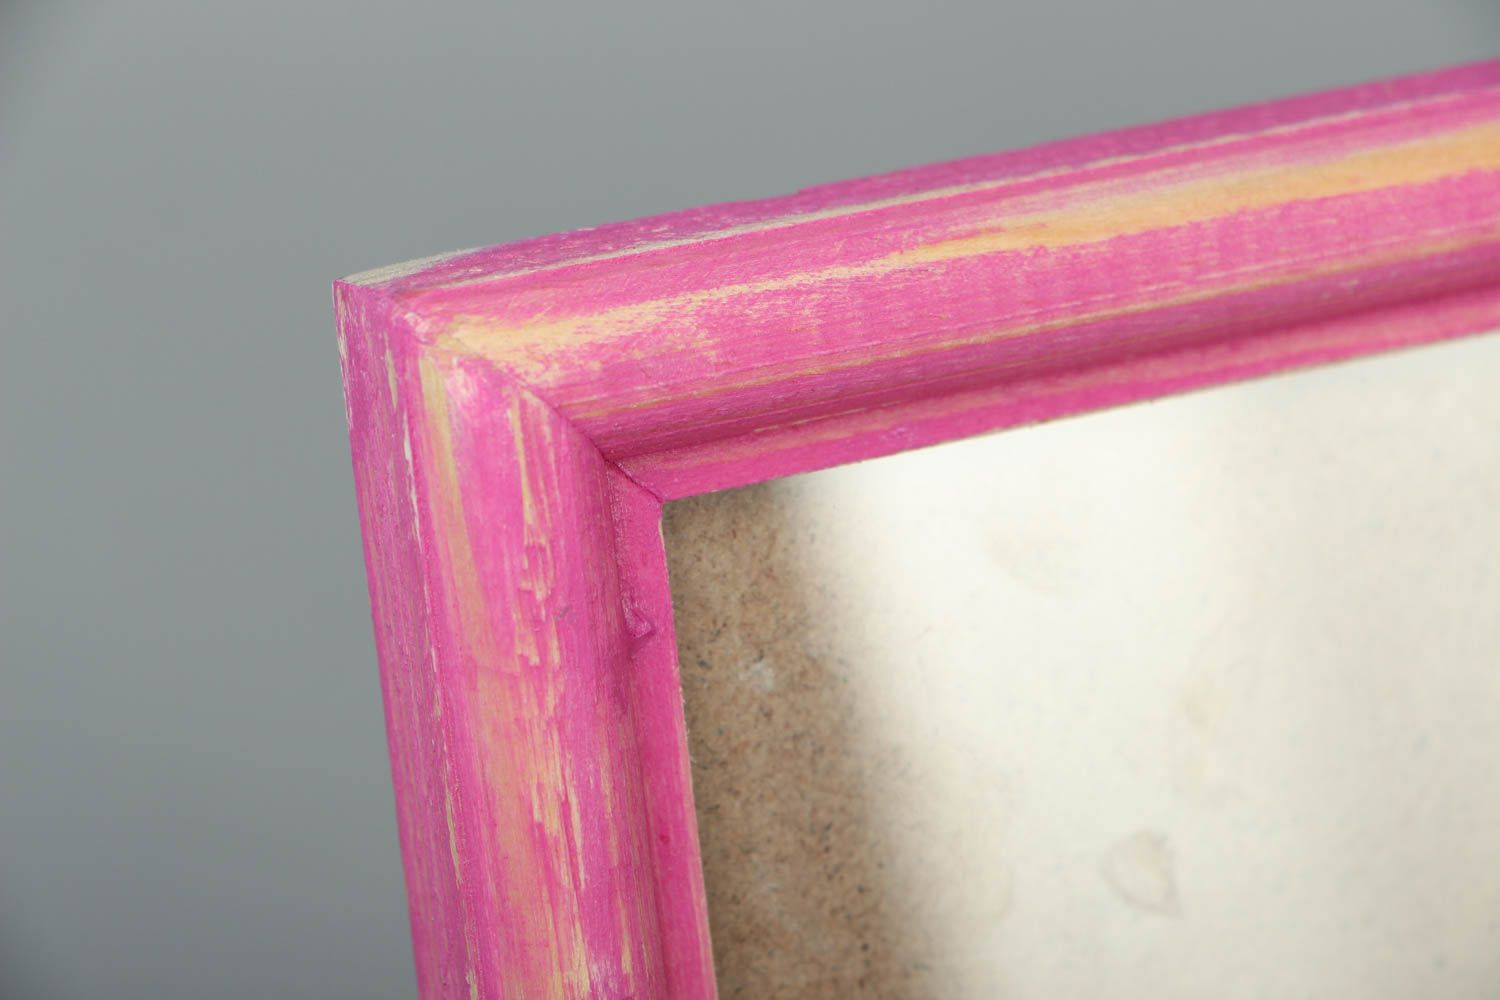 Pink wooden photo frame photo 2